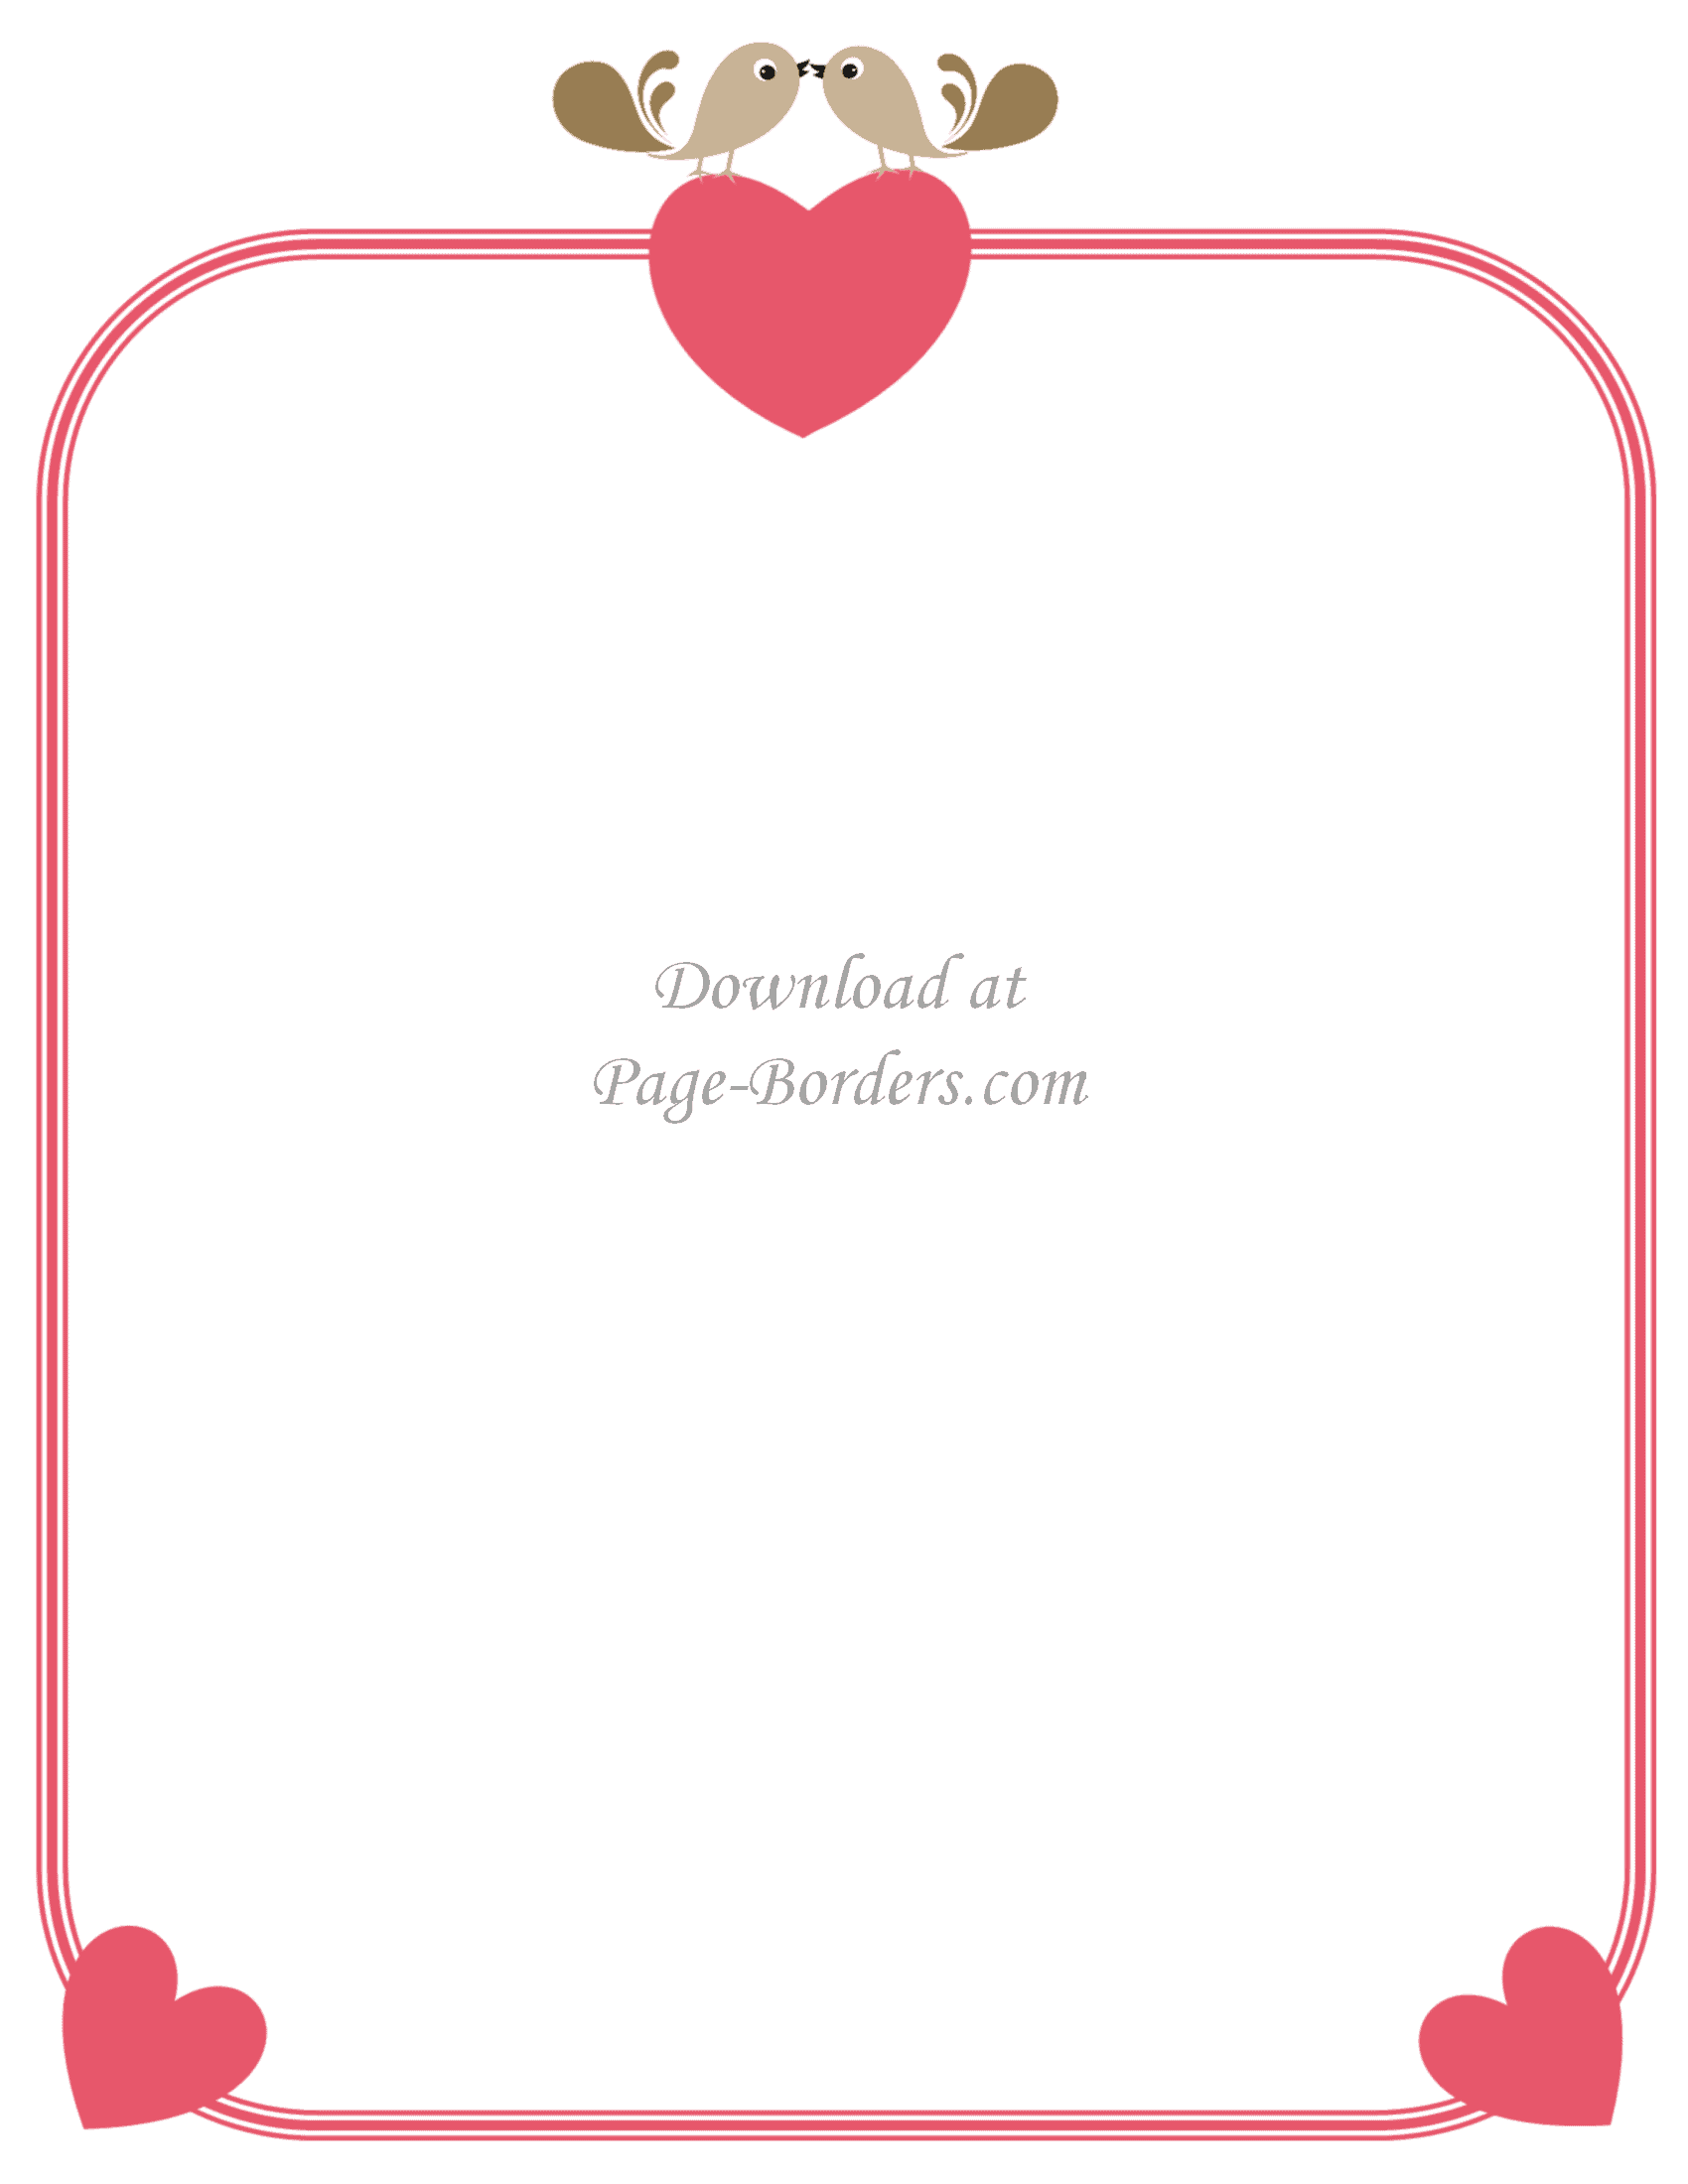 Free Printable Page Borders with Hearts